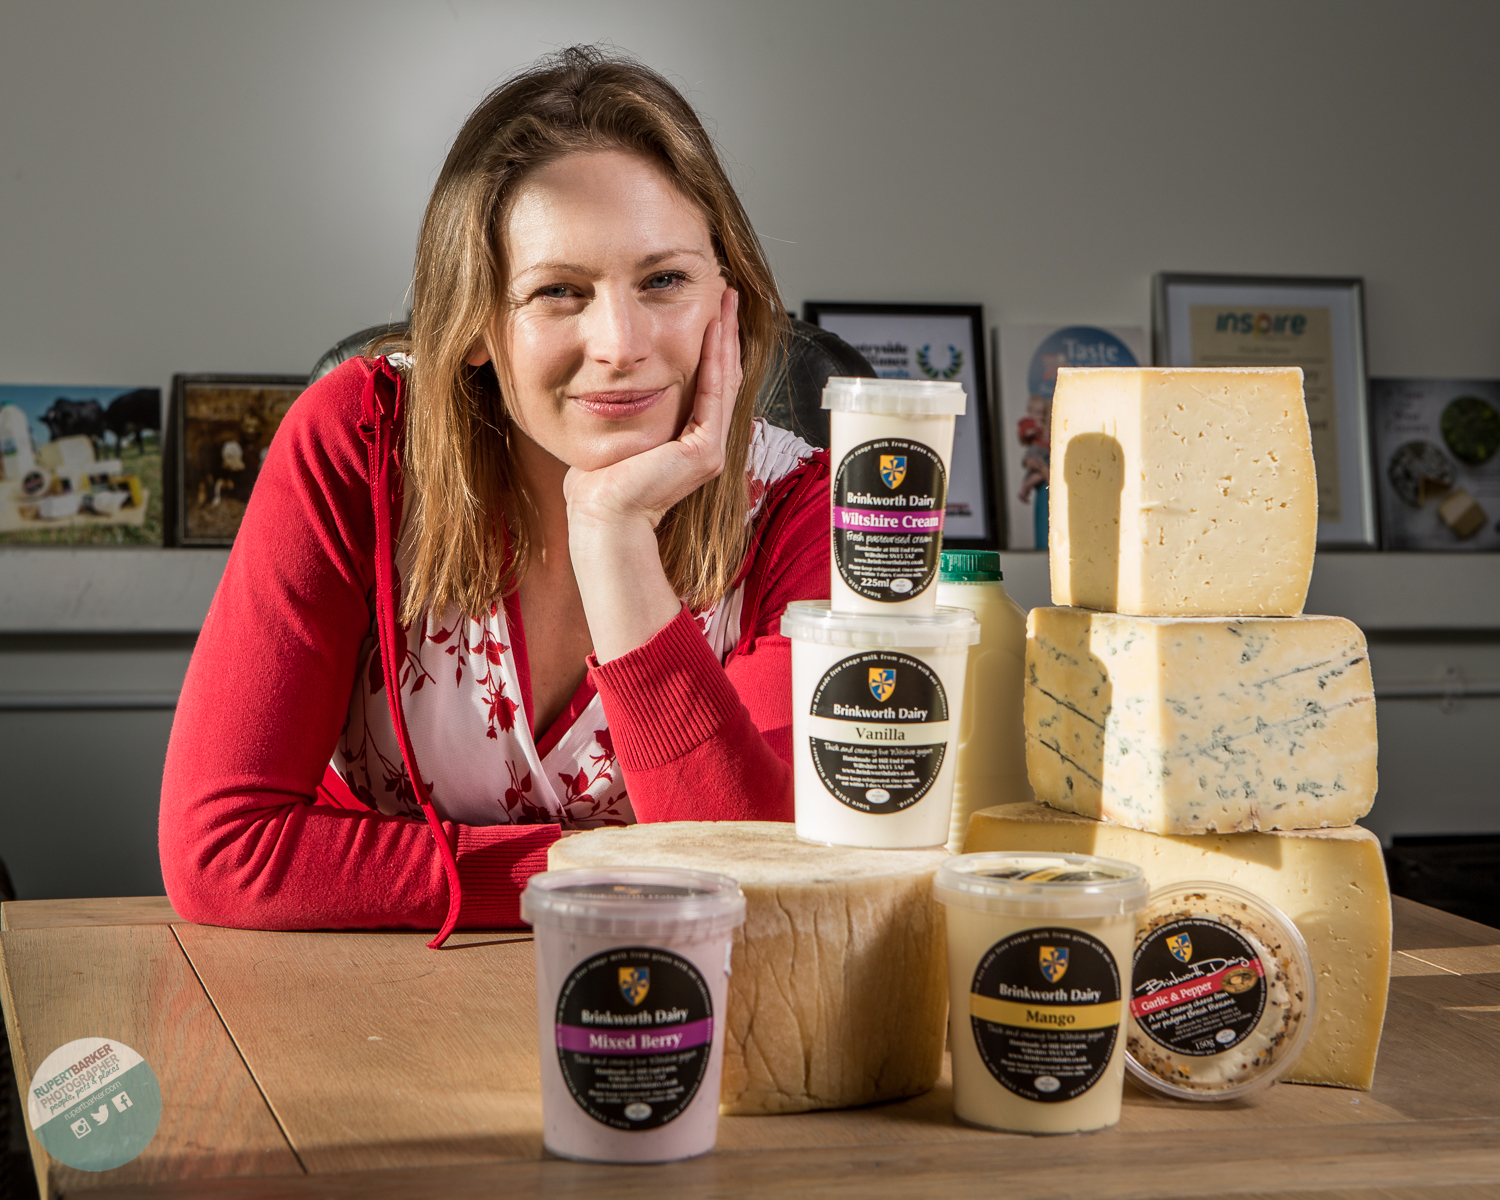 portrait Ceri Brinkworth Dairy Wiltshire cheese photography